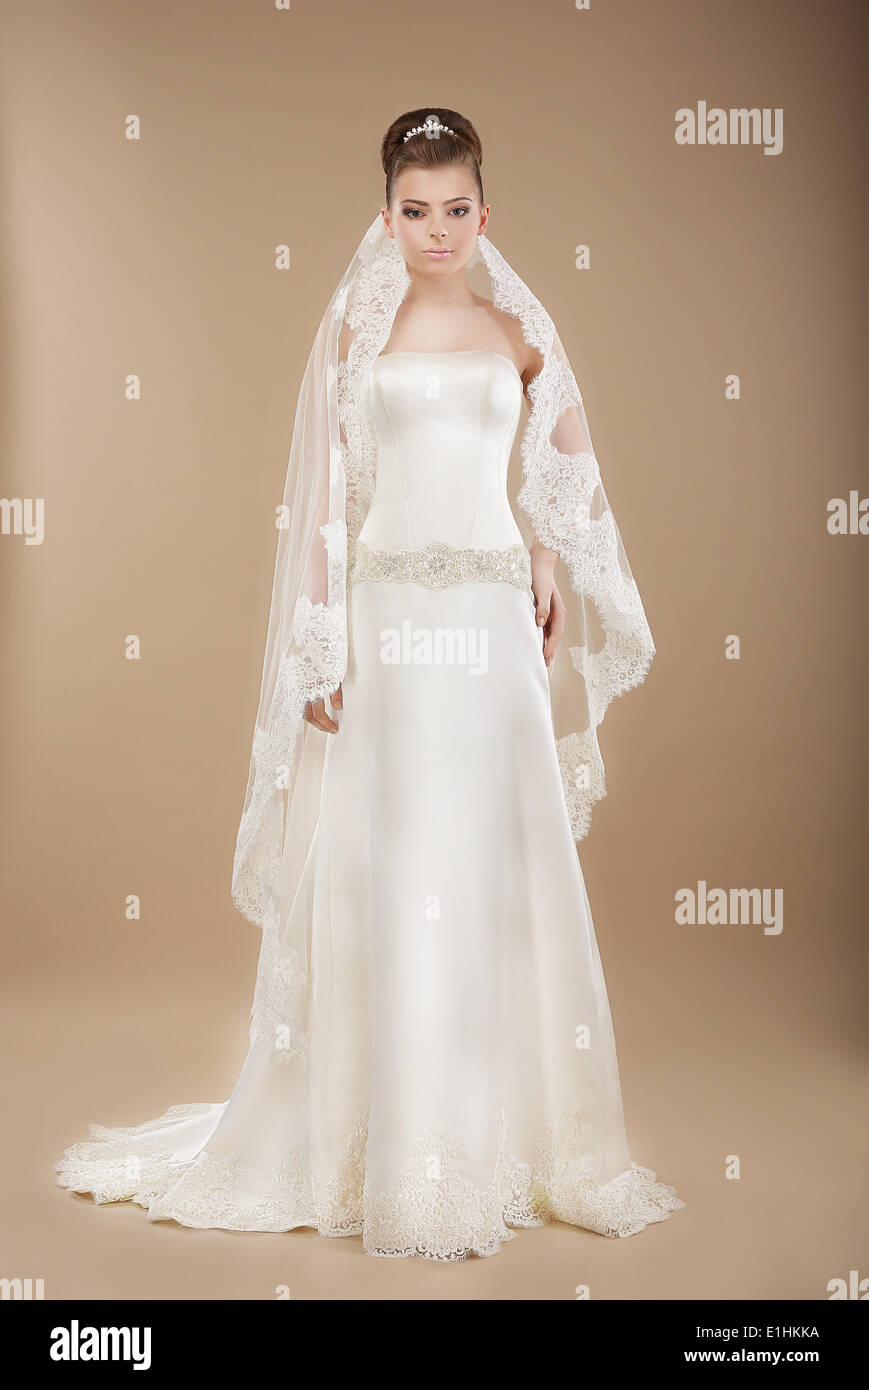 Young Bride in Wedding Lacy Dress over Brown Background - Stock Image